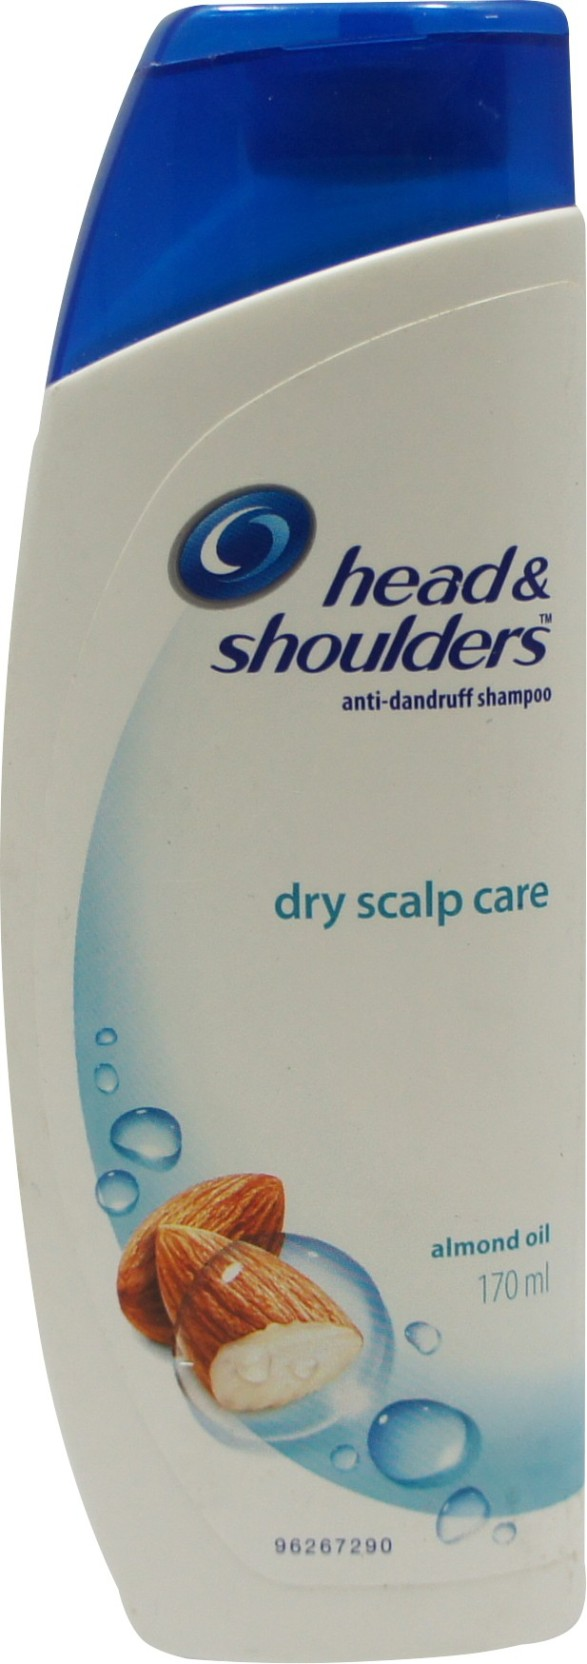 Head Shoulders Dry Scalp Care Price In India Buy Ampamp Shoulder Sampo Cool Menthol 680 Ml Home